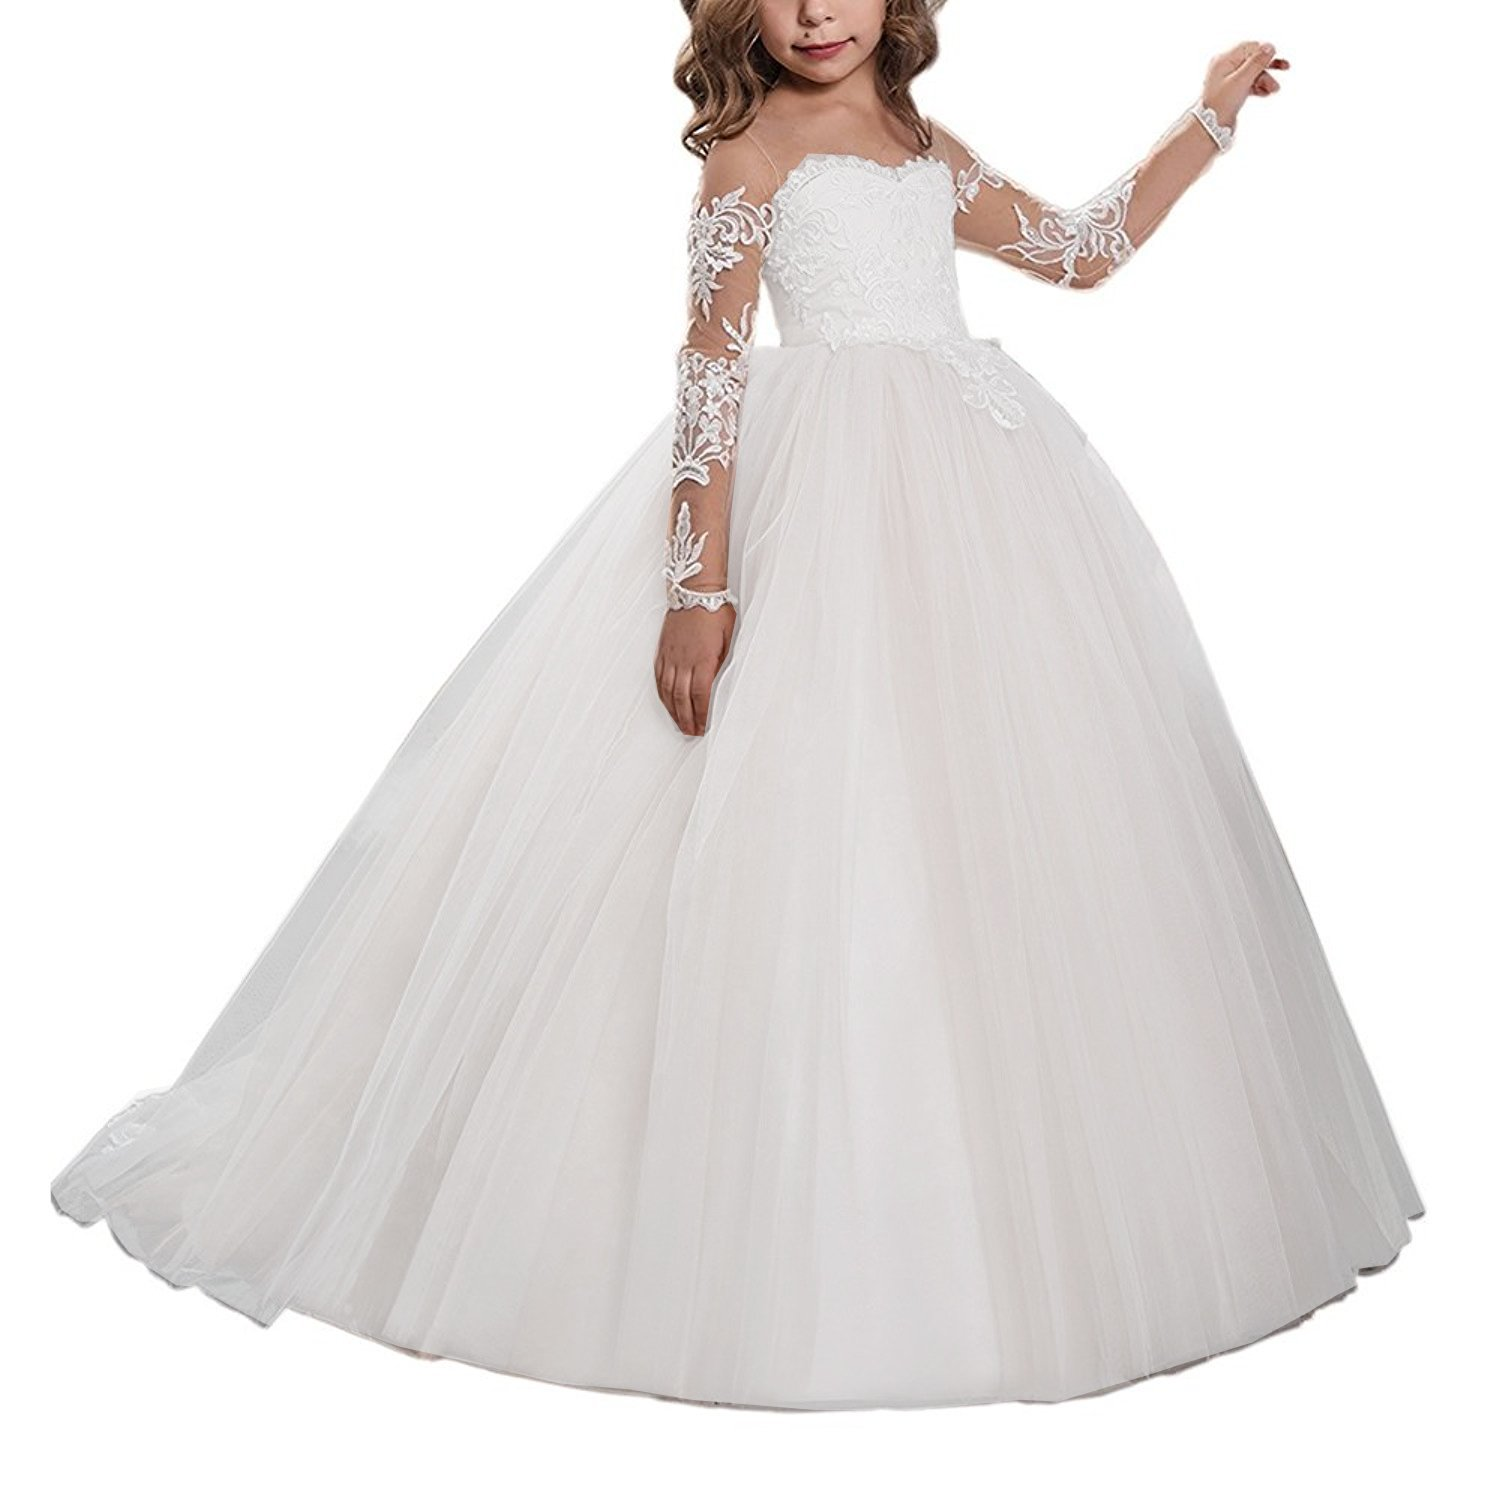 Nina Flower Girls Dress for Wedding Pageant First Communion DressIY13